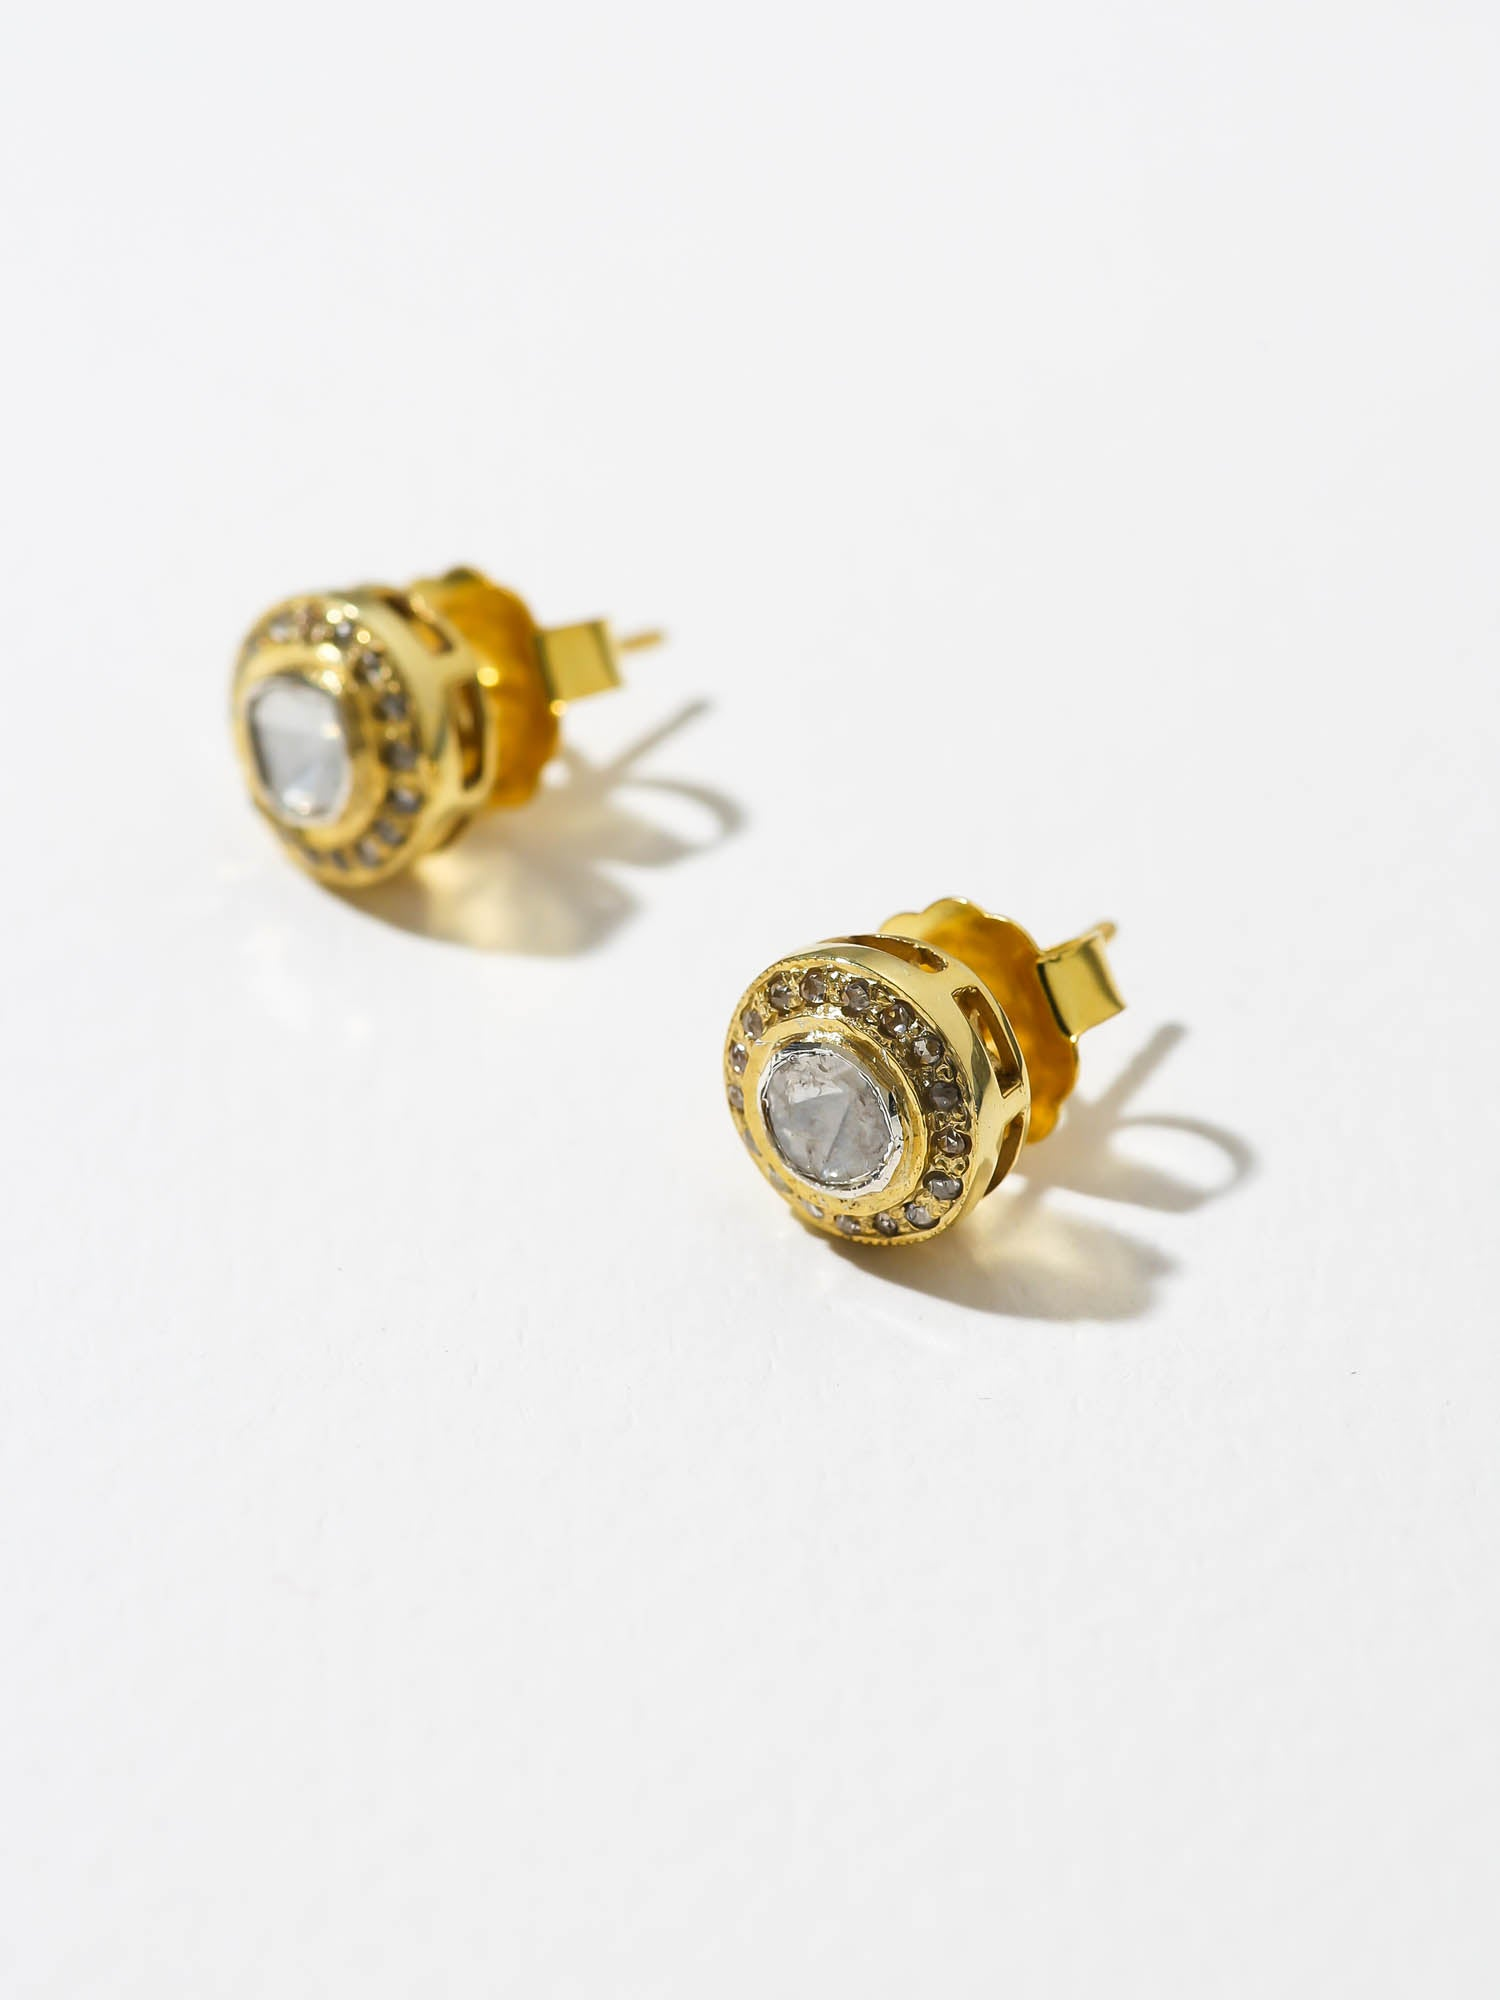 The Erela Diamond Earrings